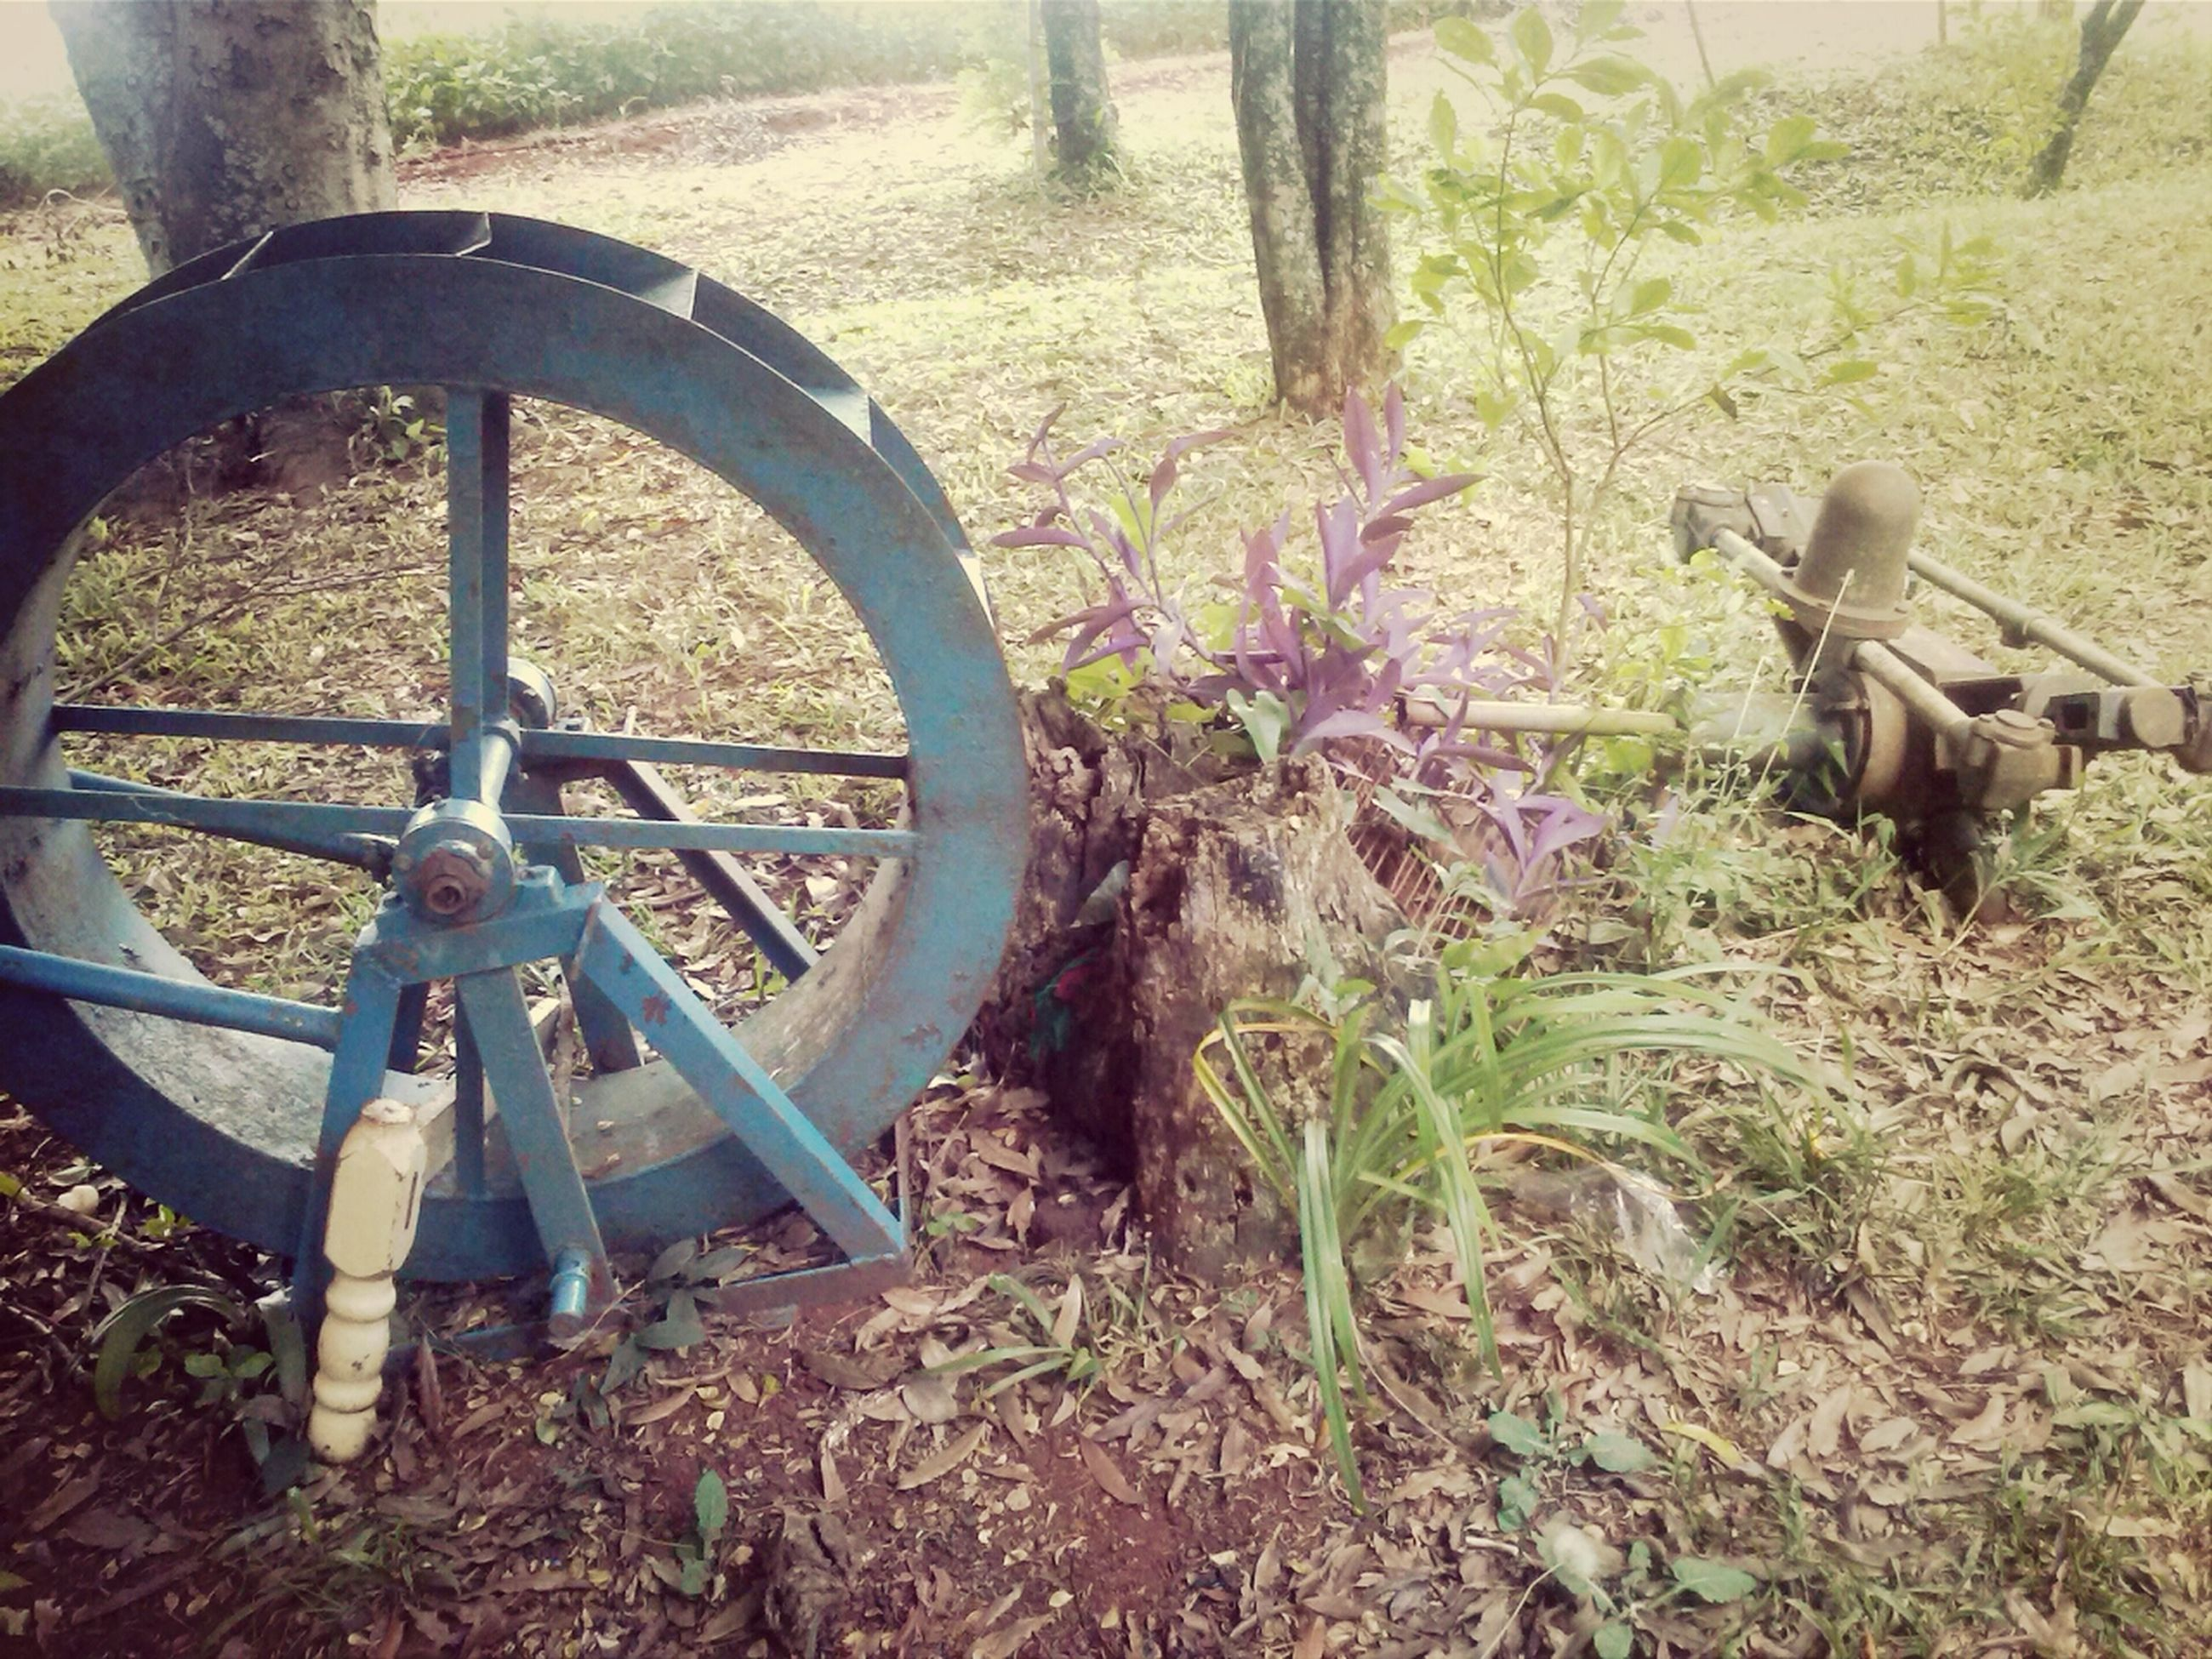 abandoned, obsolete, damaged, old, grass, rusty, field, metal, wheel, deterioration, run-down, day, front or back yard, no people, plant, outdoors, transportation, broken, wood - material, close-up